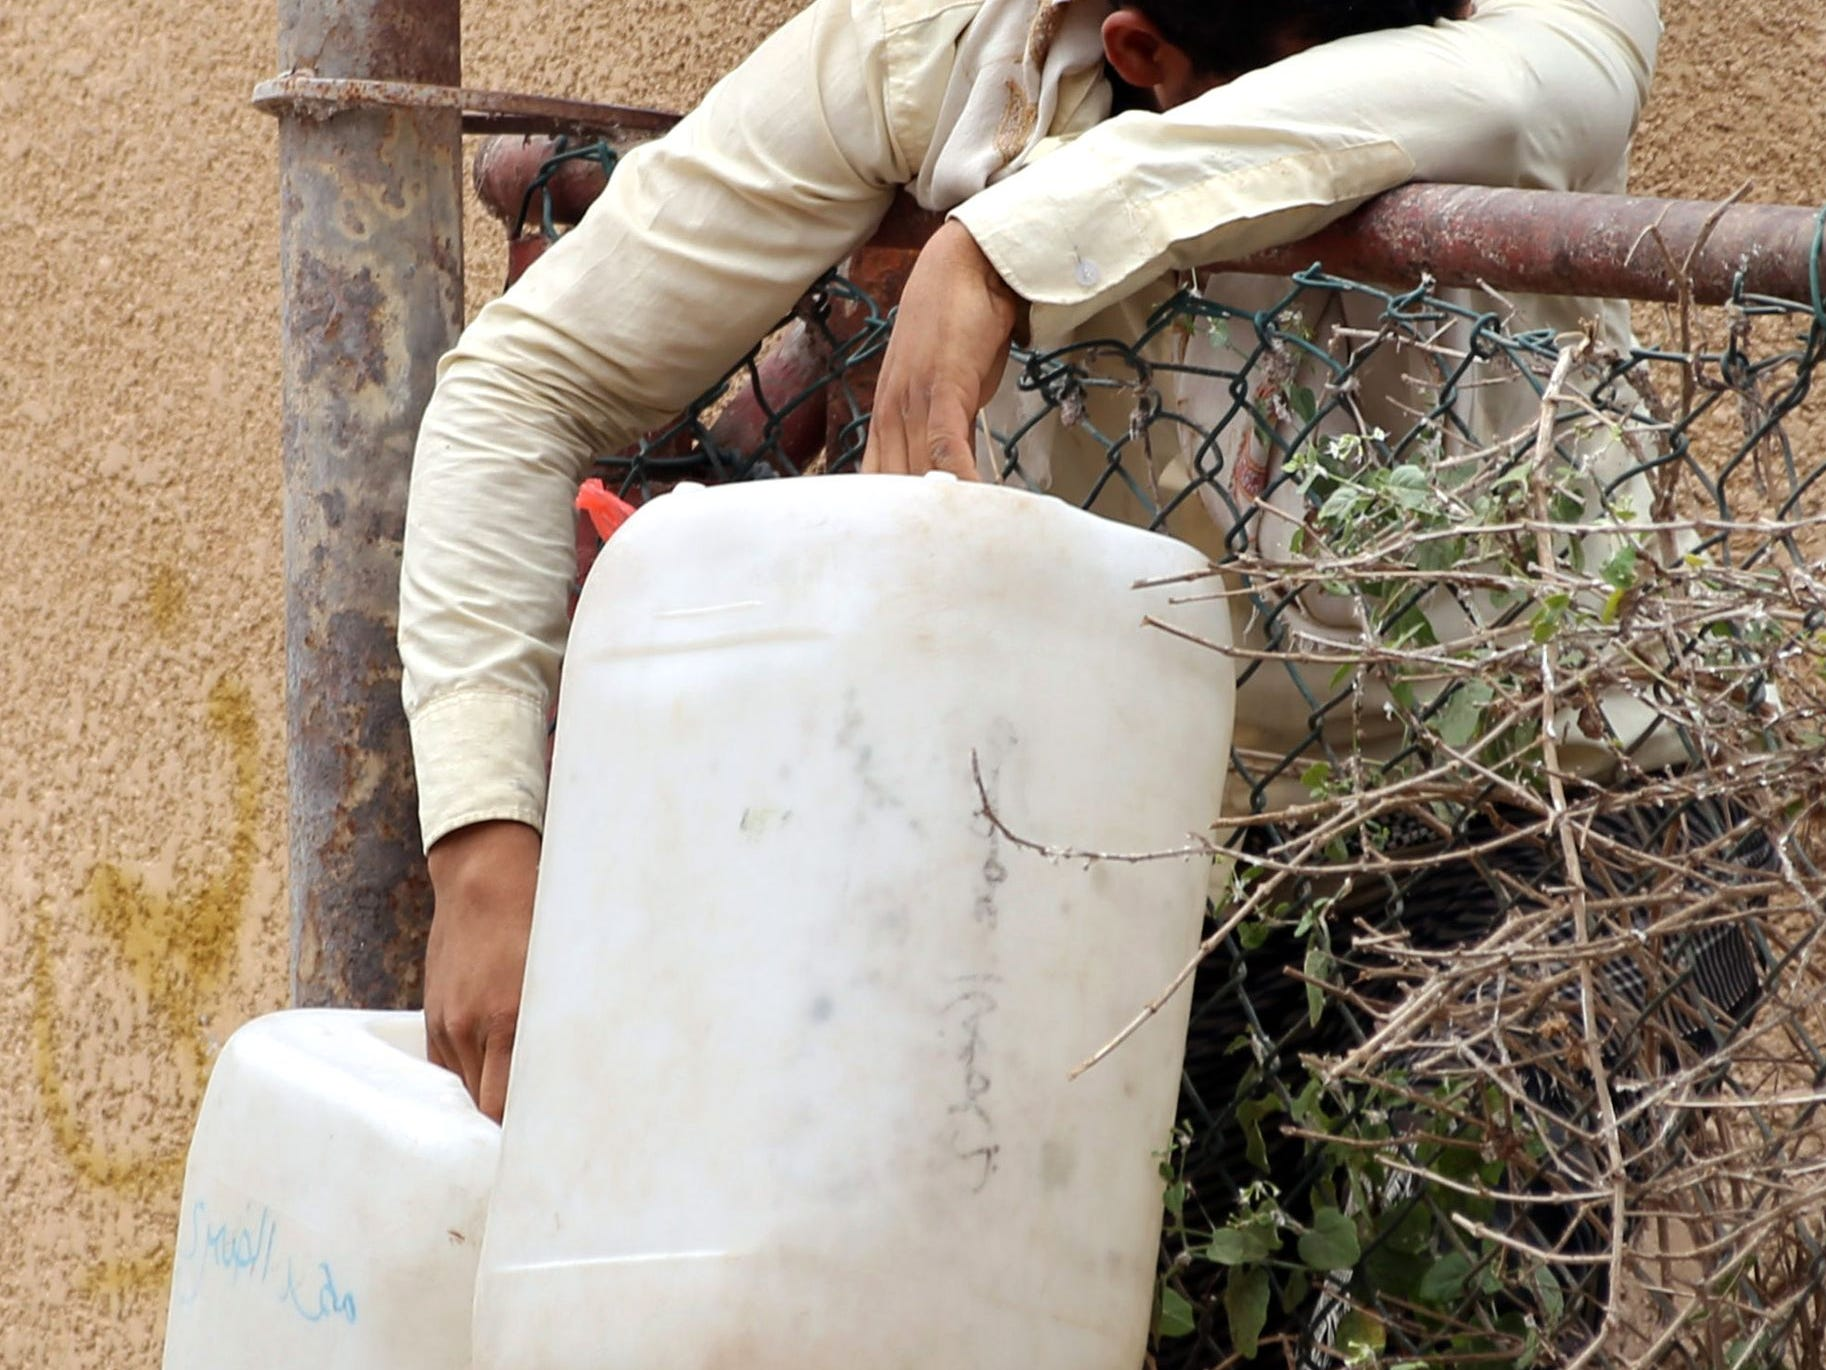 A Yemeni man holds plastic containers as he waits to collect water from a tank in the southwestern Yemeni city of Taez, on April 3, 2019. The war in Yemen has left thousands dead and triggered the world's worst humanitarian crisis, according to the United Nations. According to Action Contre la Faim 16 million people lack access to water and sanitation and basic health care. Fifty percent of Yemen's clinics are closed and more than 70 percent do not have a regular supply of medicine.